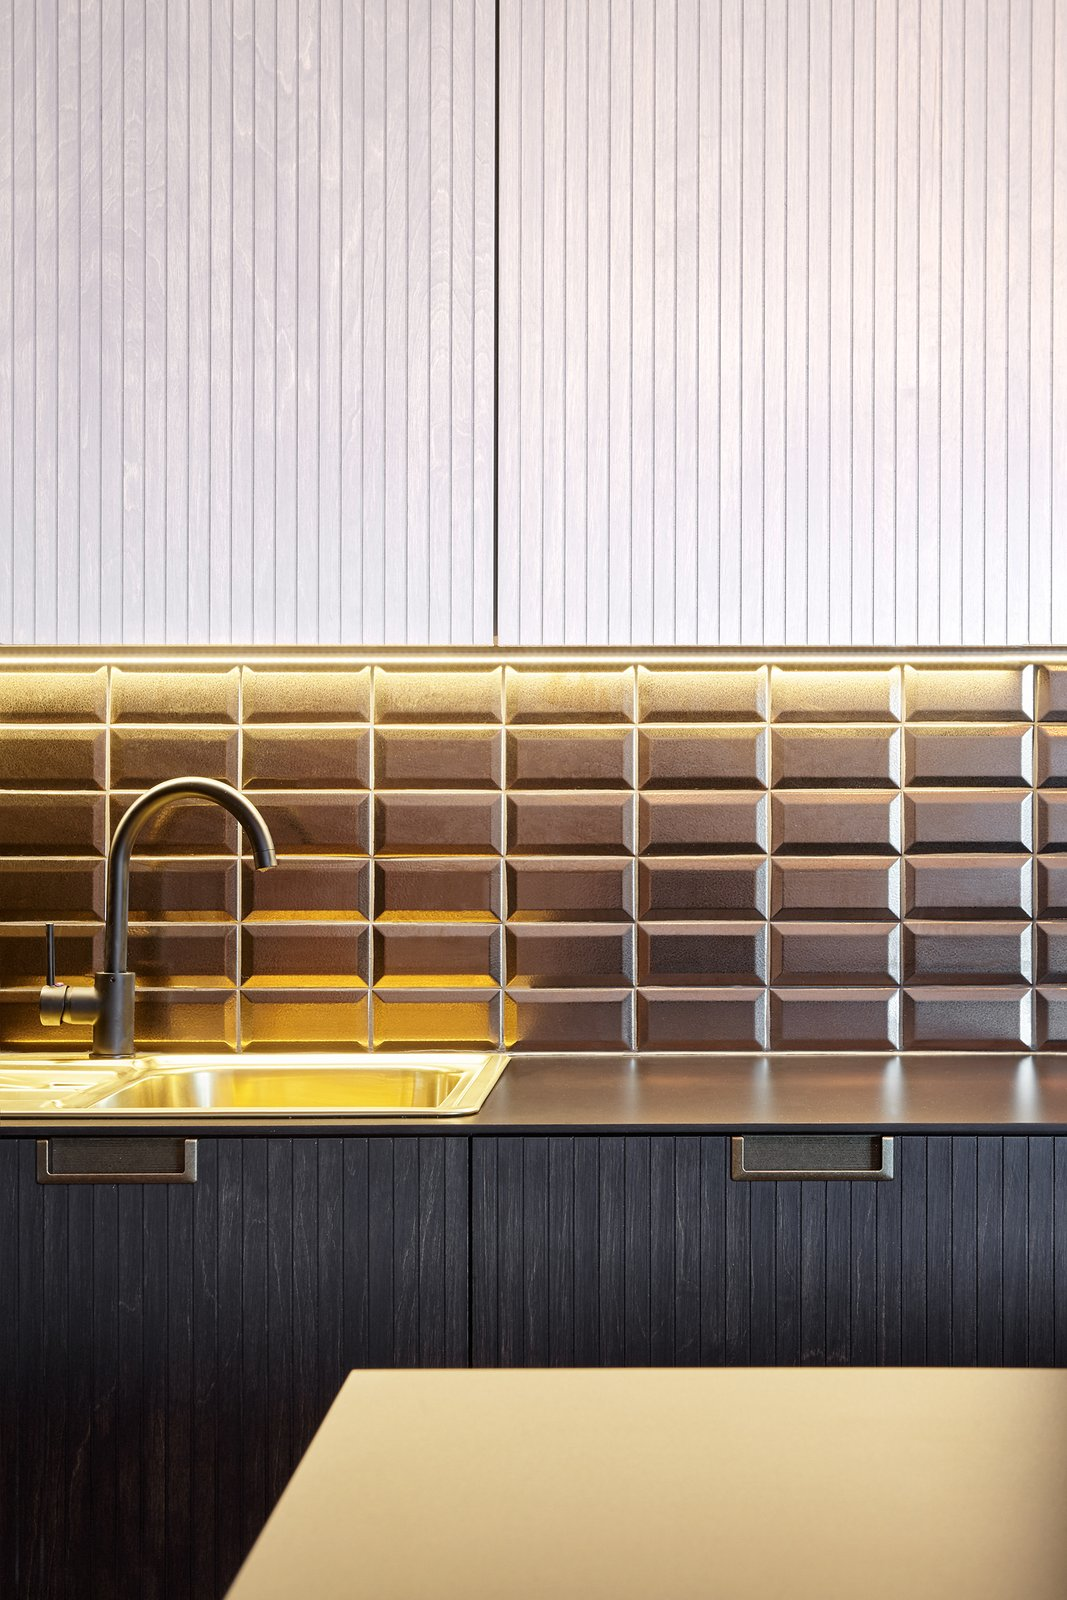 Kitchen and Ceramic Tile Backsplashe Golden brown subway tiles from Diffusion Ceramique face a black countertop from Fundermax.  Photo 9 of 11 in Tile Talk: 5 Most Popular Shapes and How to Use Them from A Sleek Kitchen and Double Bathroom Renovation in Prague